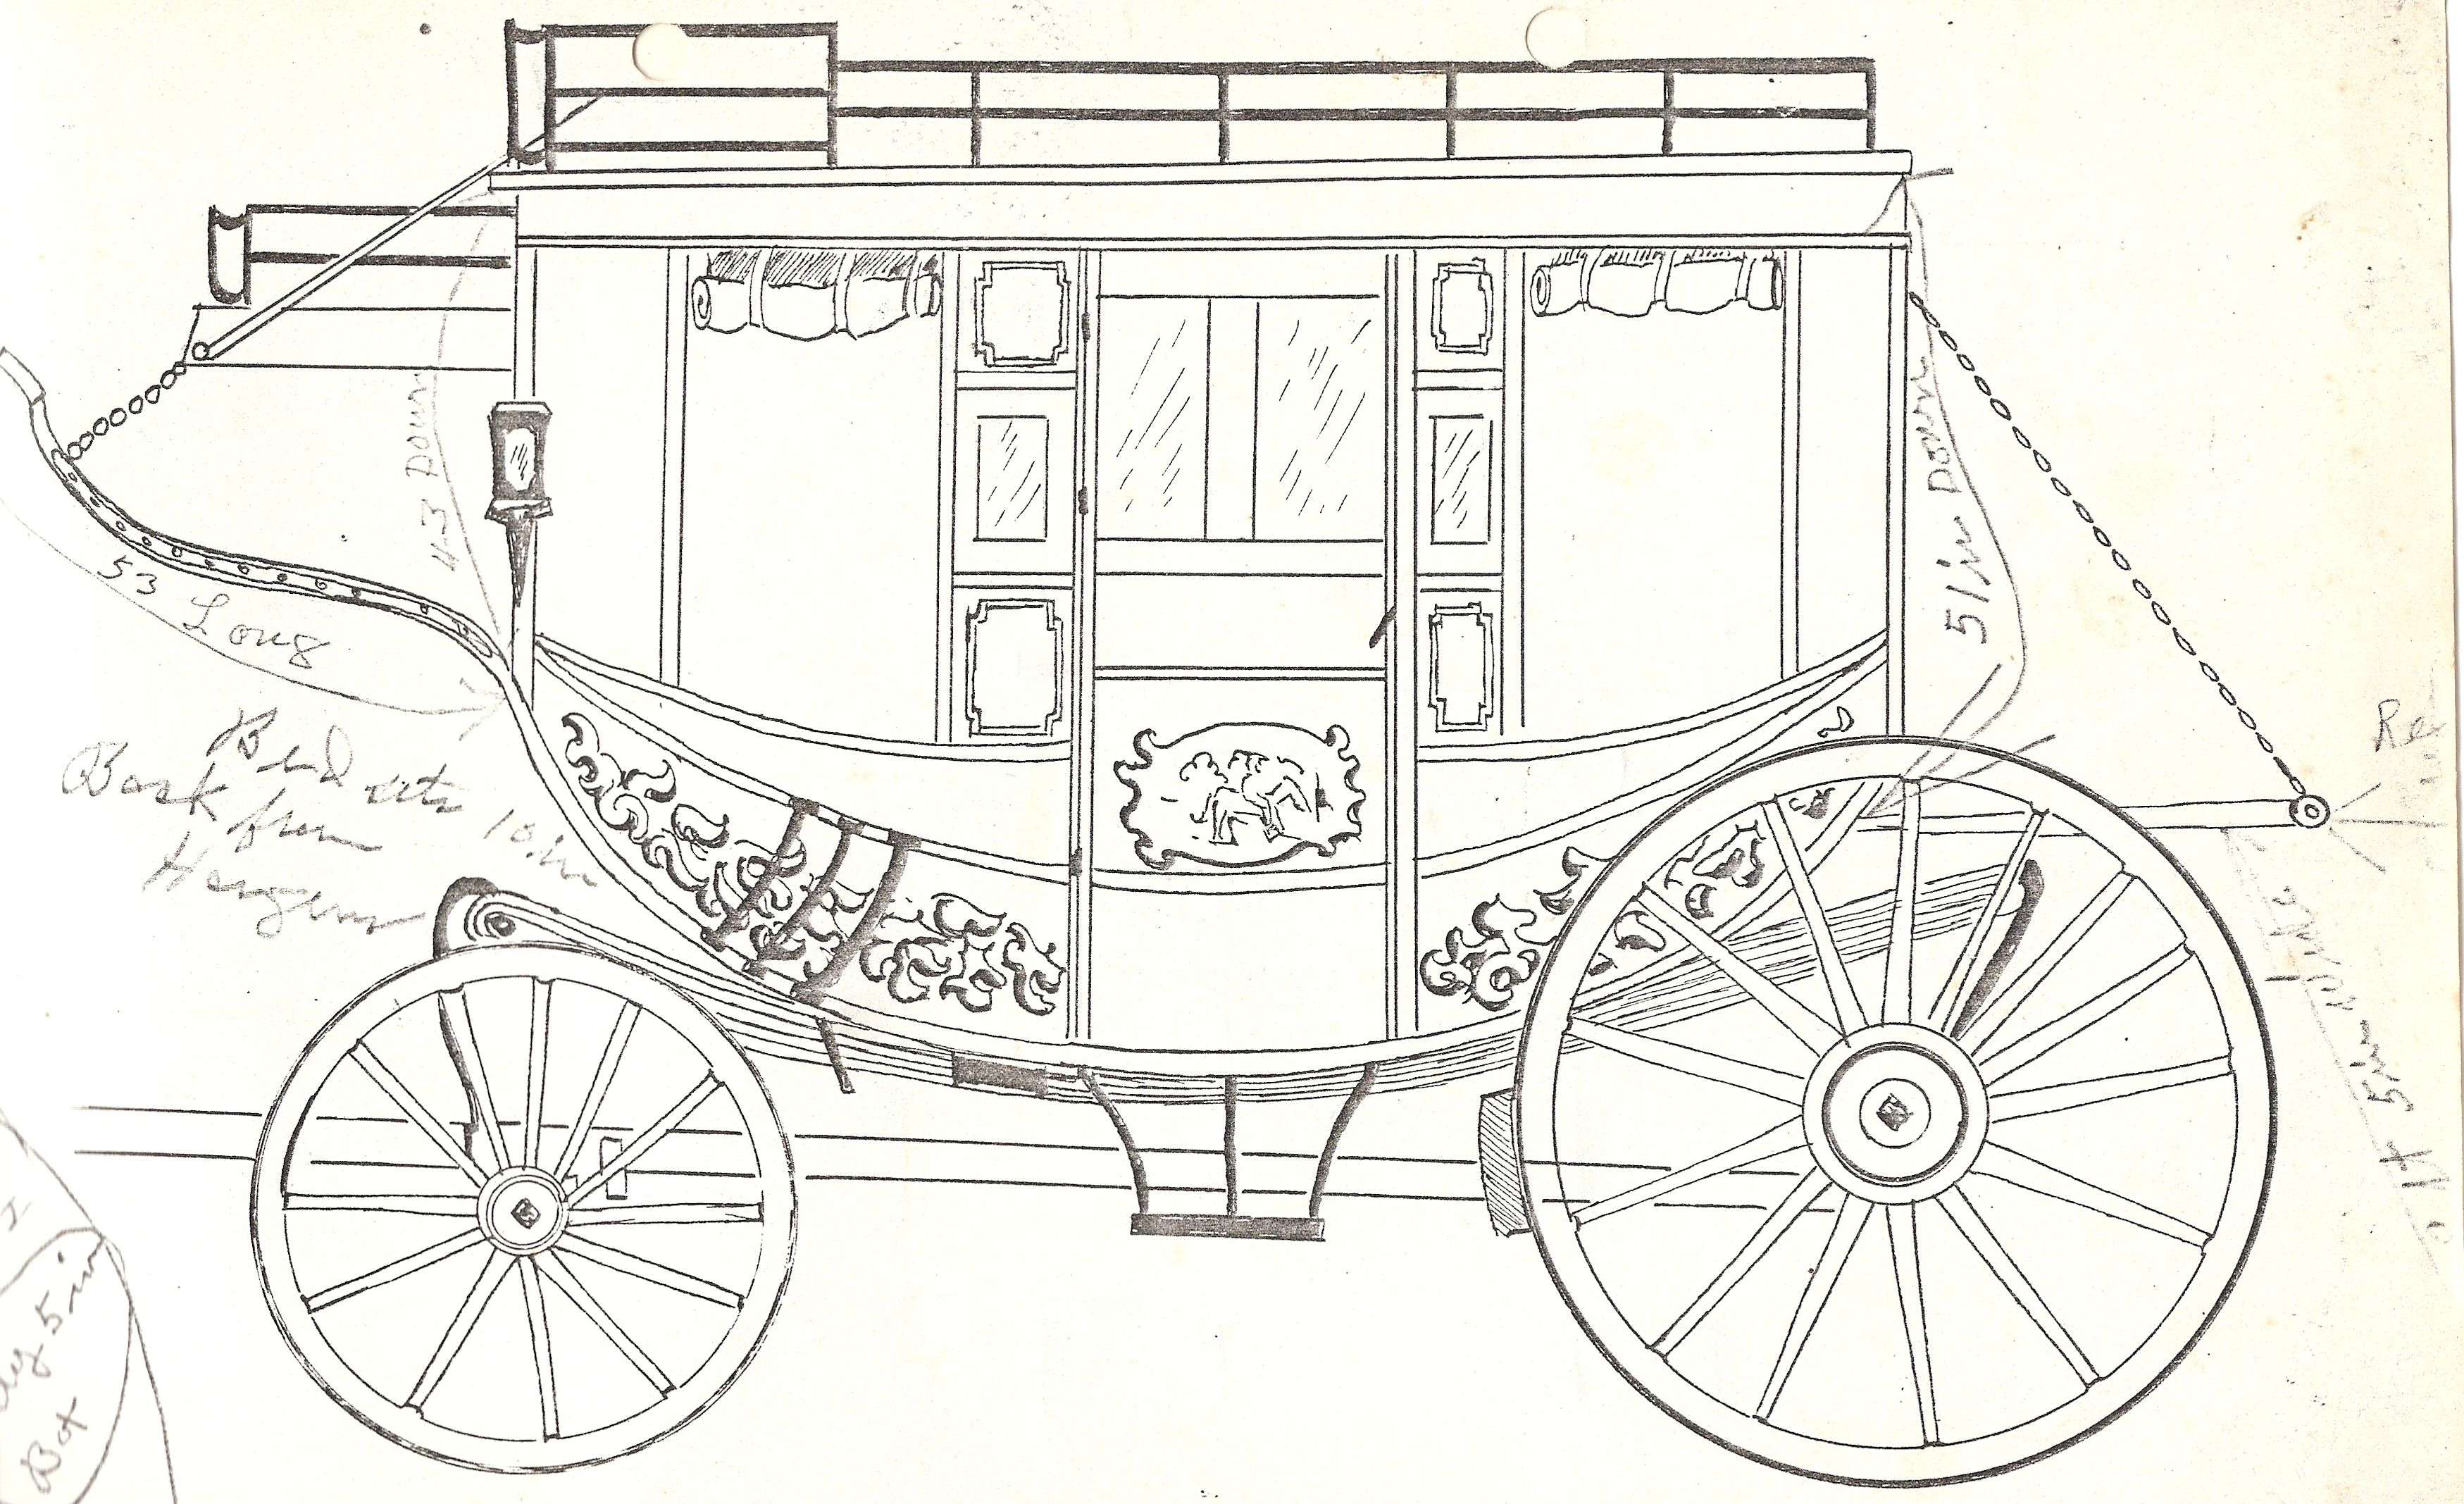 From Claude\'s stagecoach blueprints.